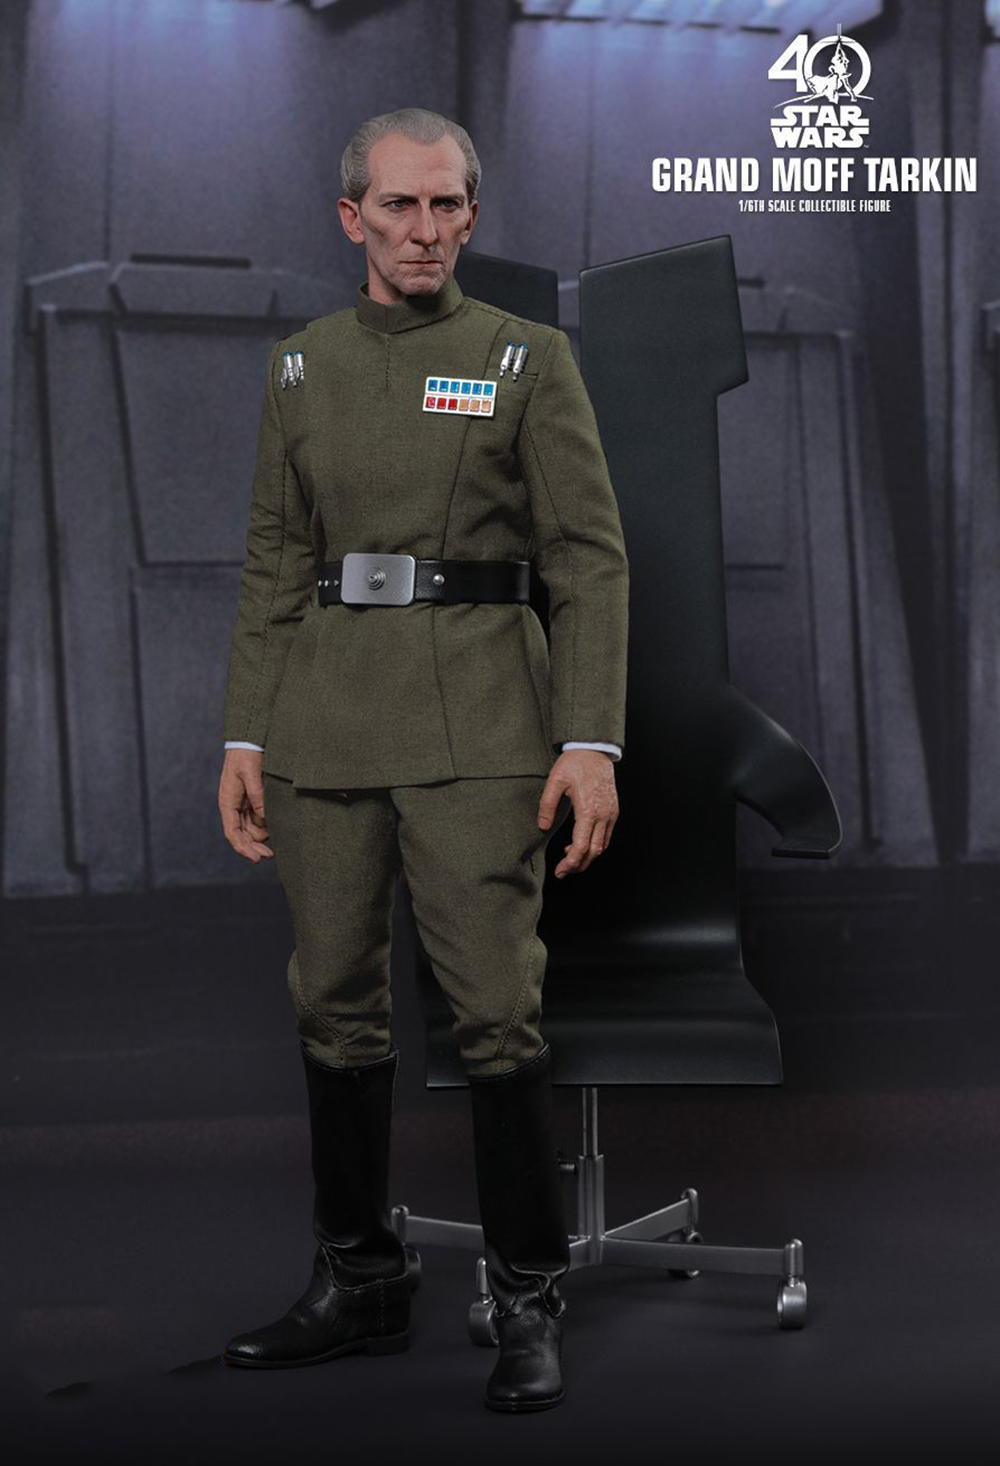 Full set Colletible 1/6 Scale Star Wars: Episode IV - A New Hope Grand Moff Tarkin Peter Cushing Figure Model Toys 1